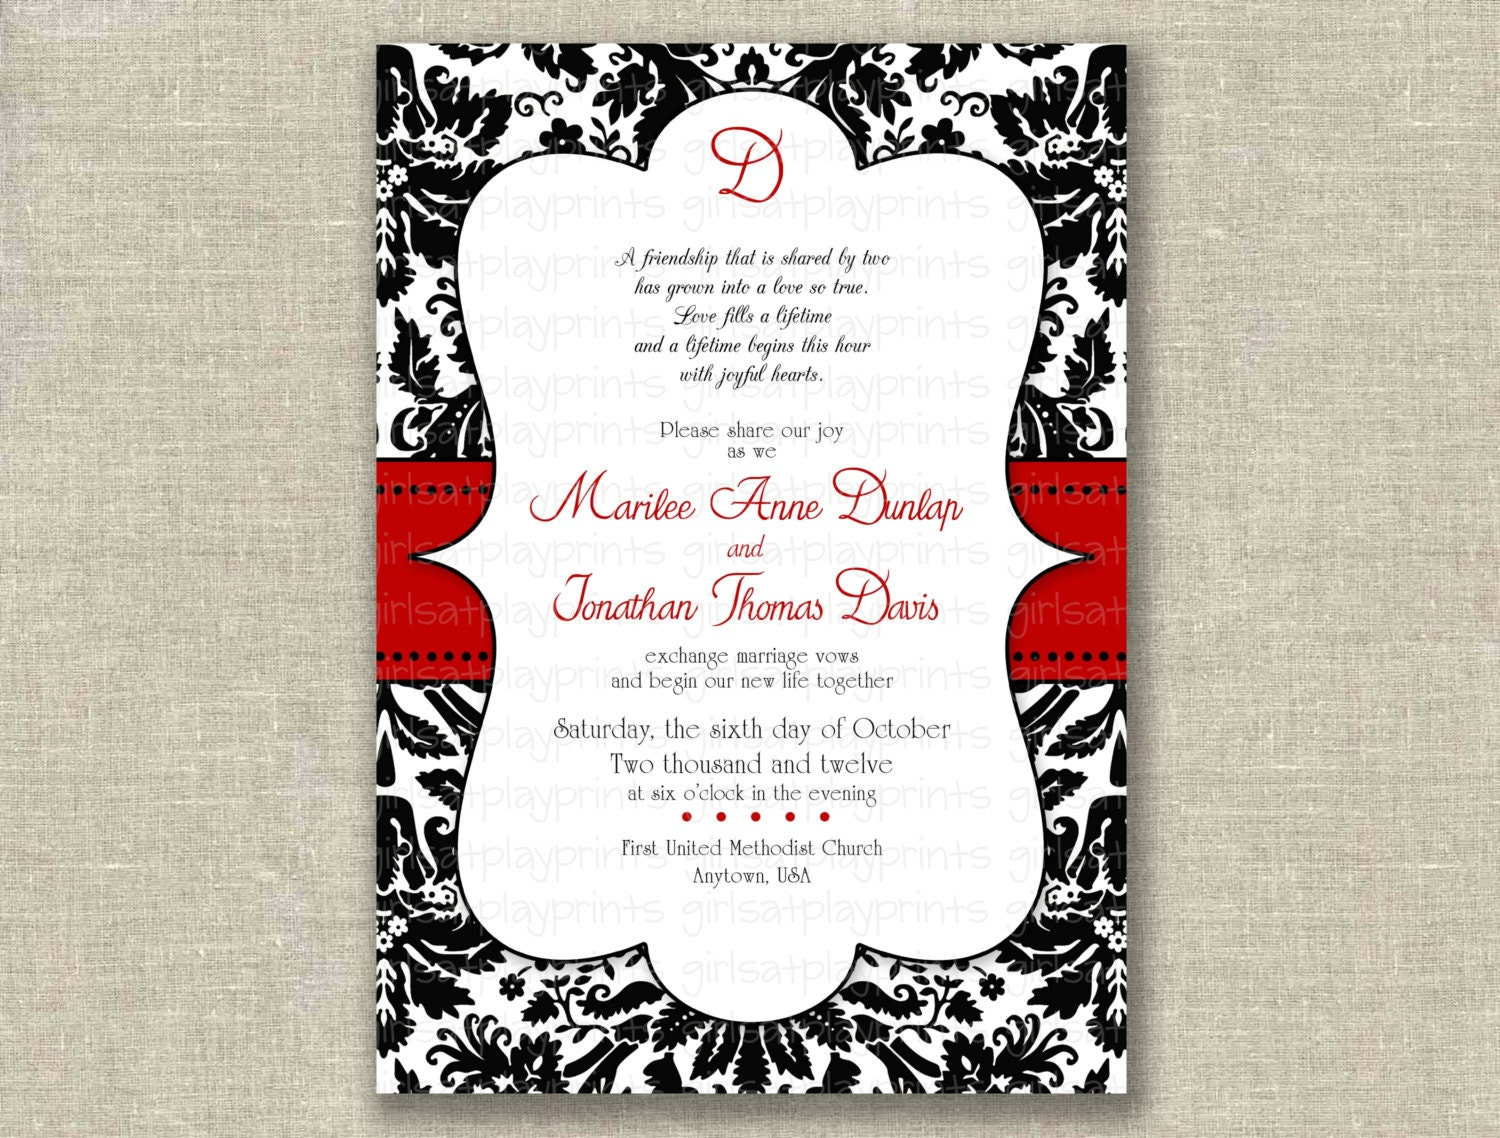 Damask wedding invitation templates free stopboris Image collections